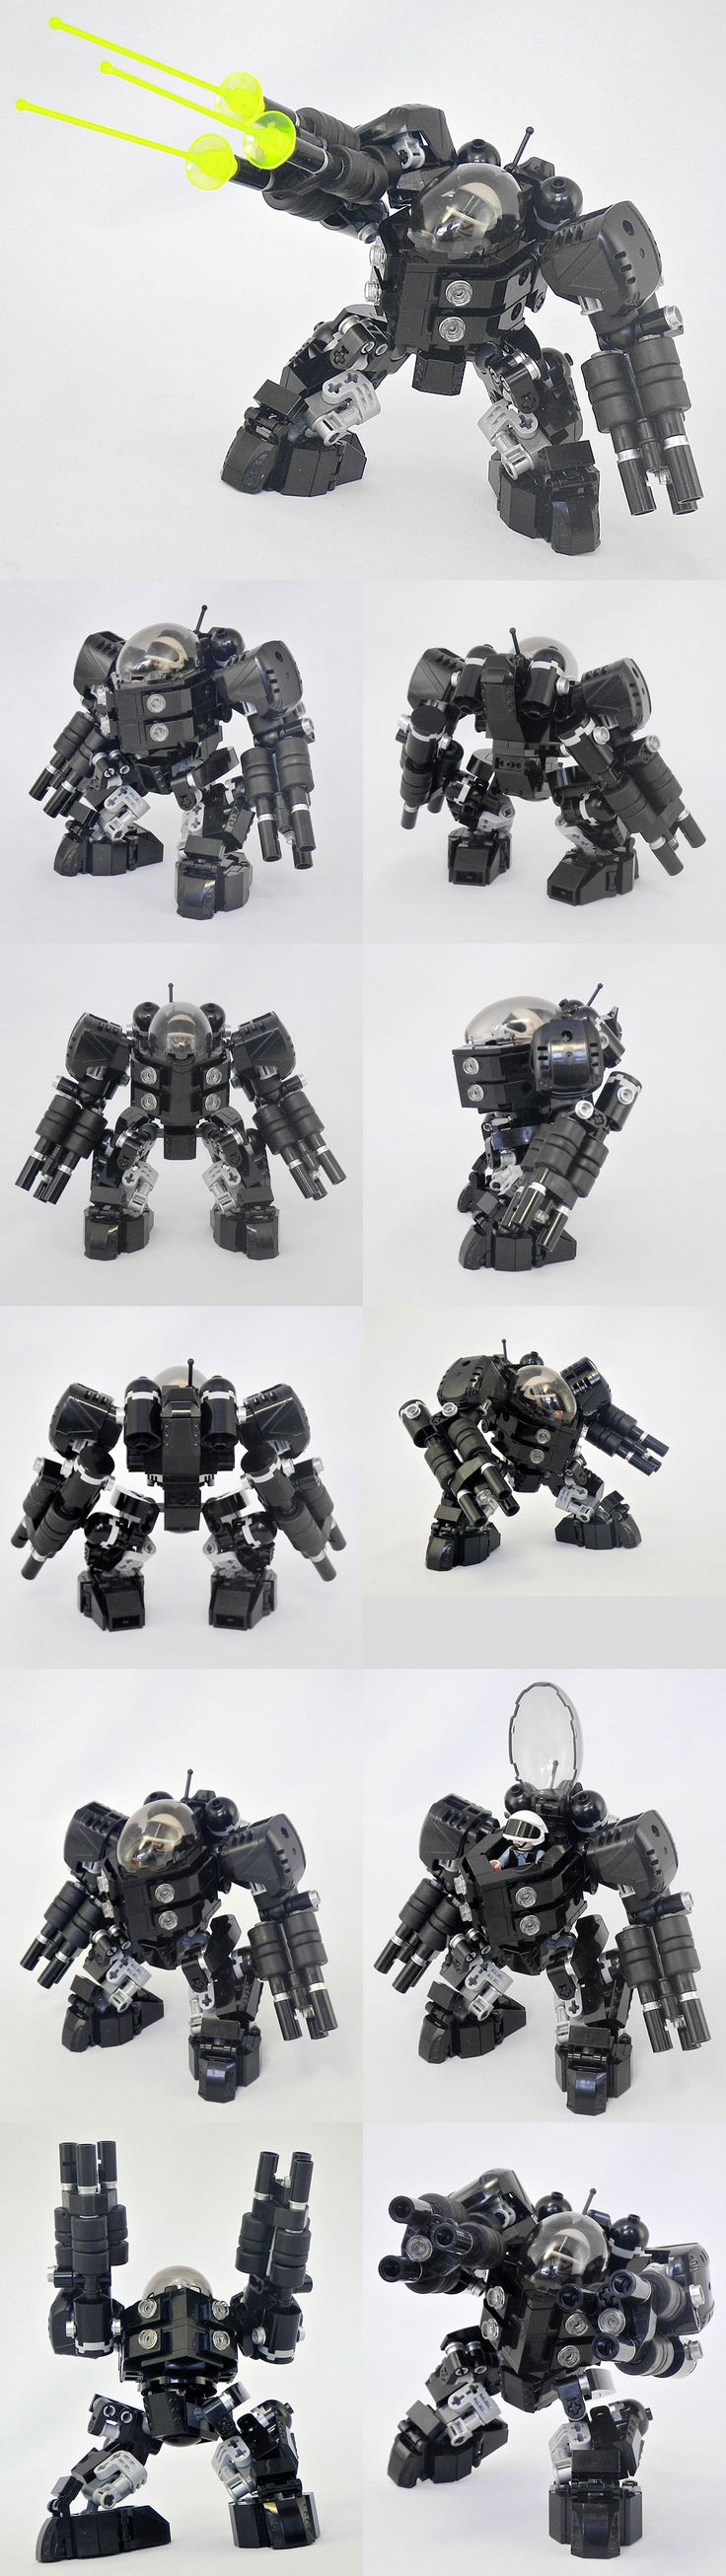 Lego Mech. Before pinterest I didn't know Lego could look so good.